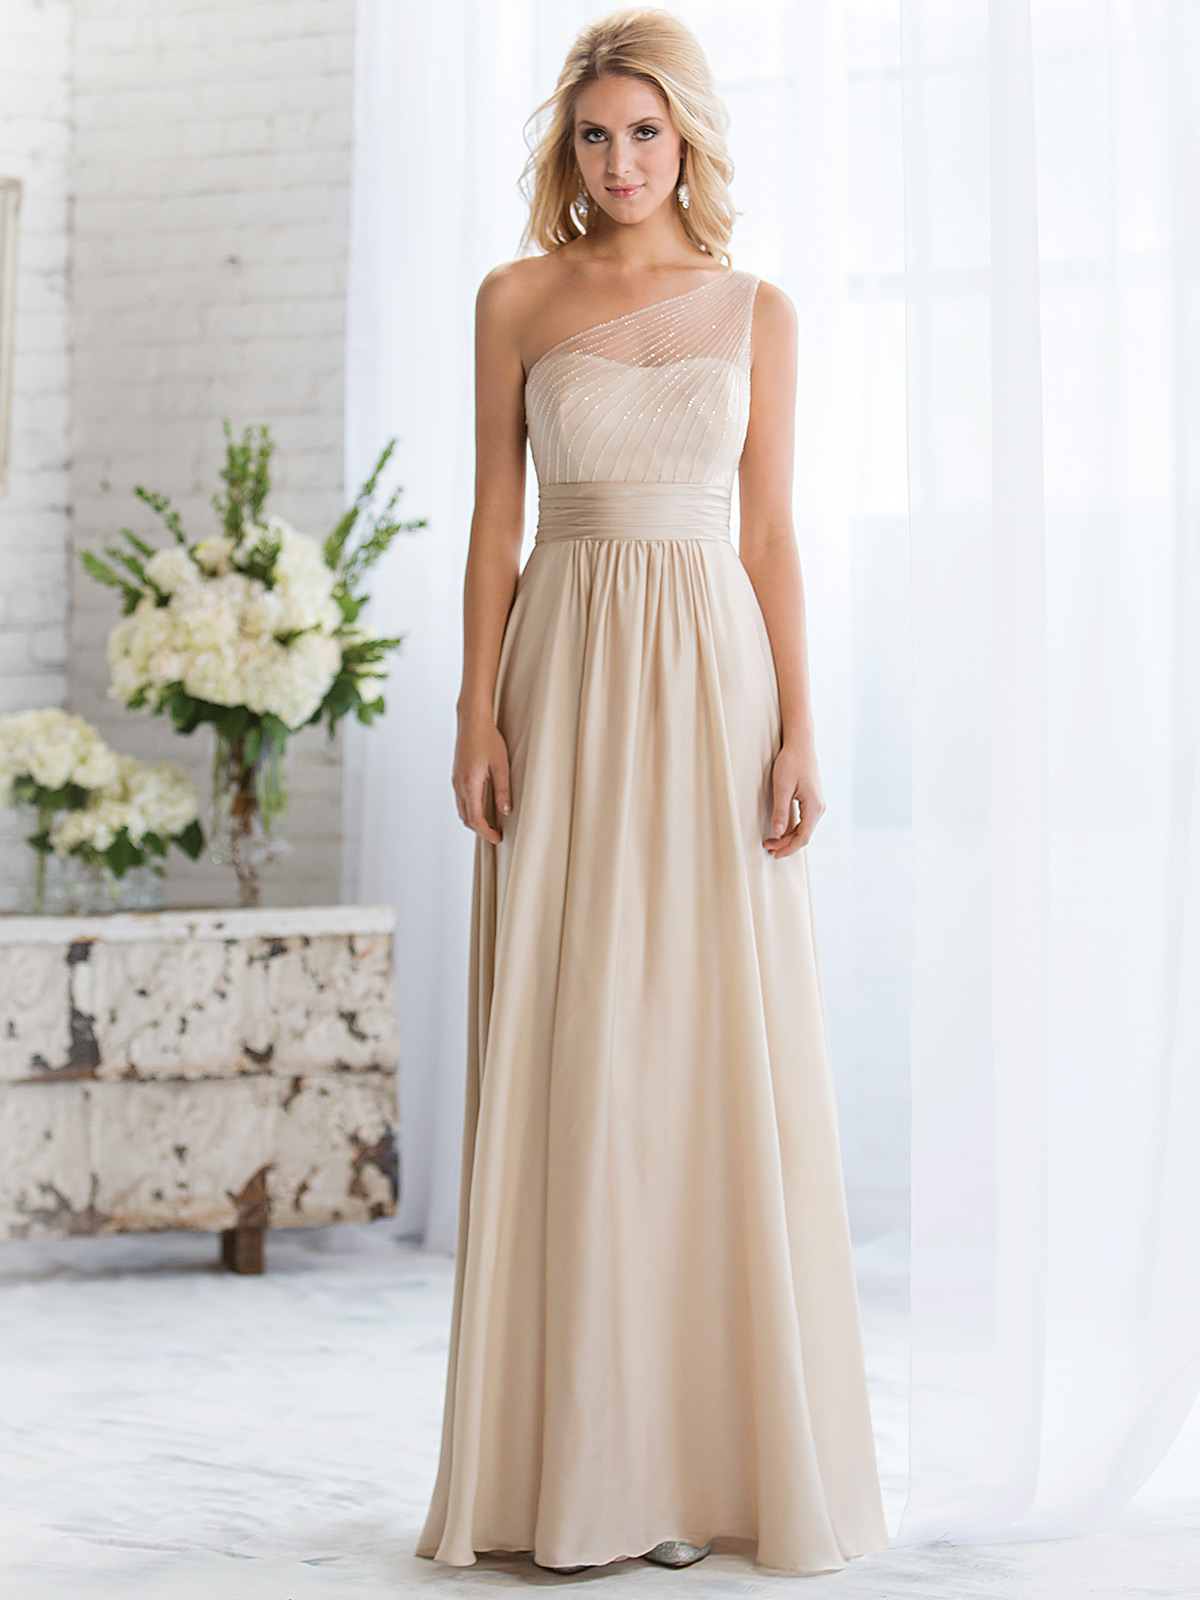 Belsoie bridesmaid dress l164056 dimitradesigns one shoulder beaded belsoie bridesmaids dress by jasmine l164056 ombrellifo Choice Image